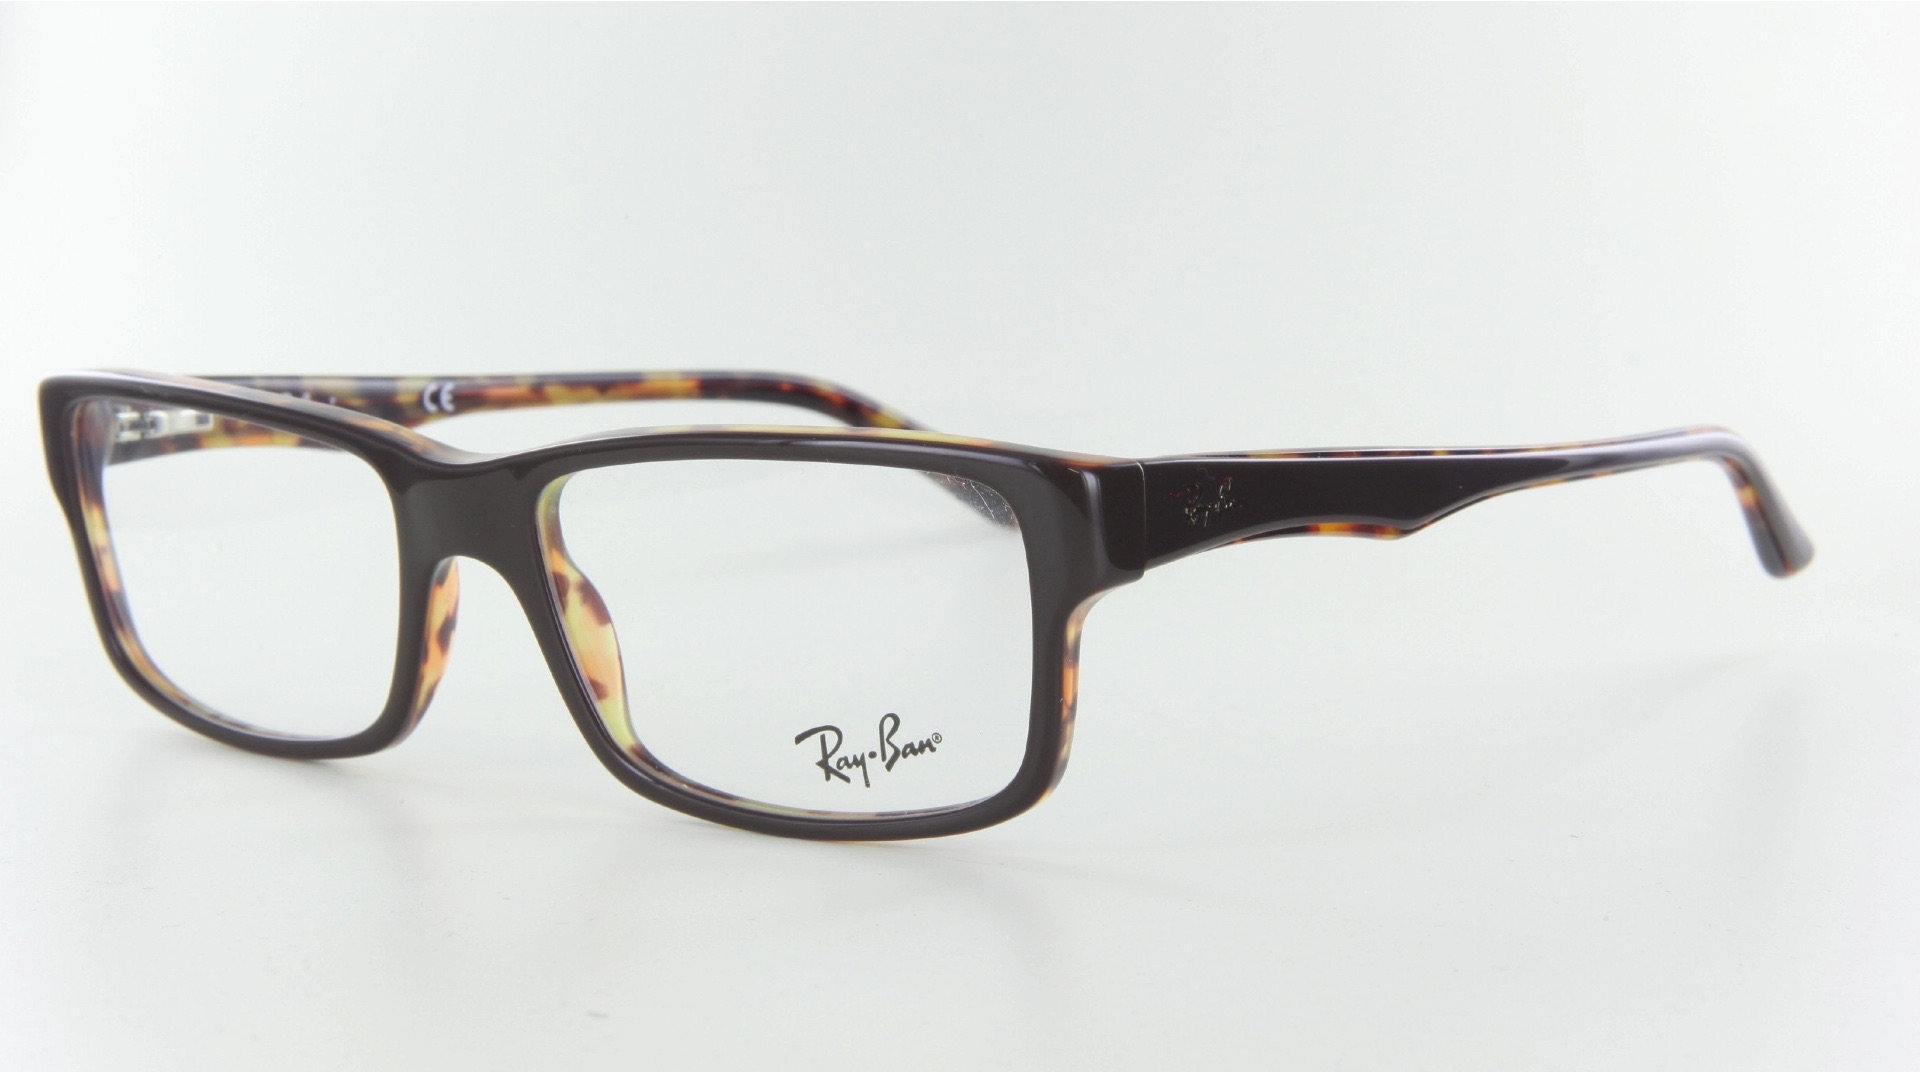 Ray-Ban - ref: 69403